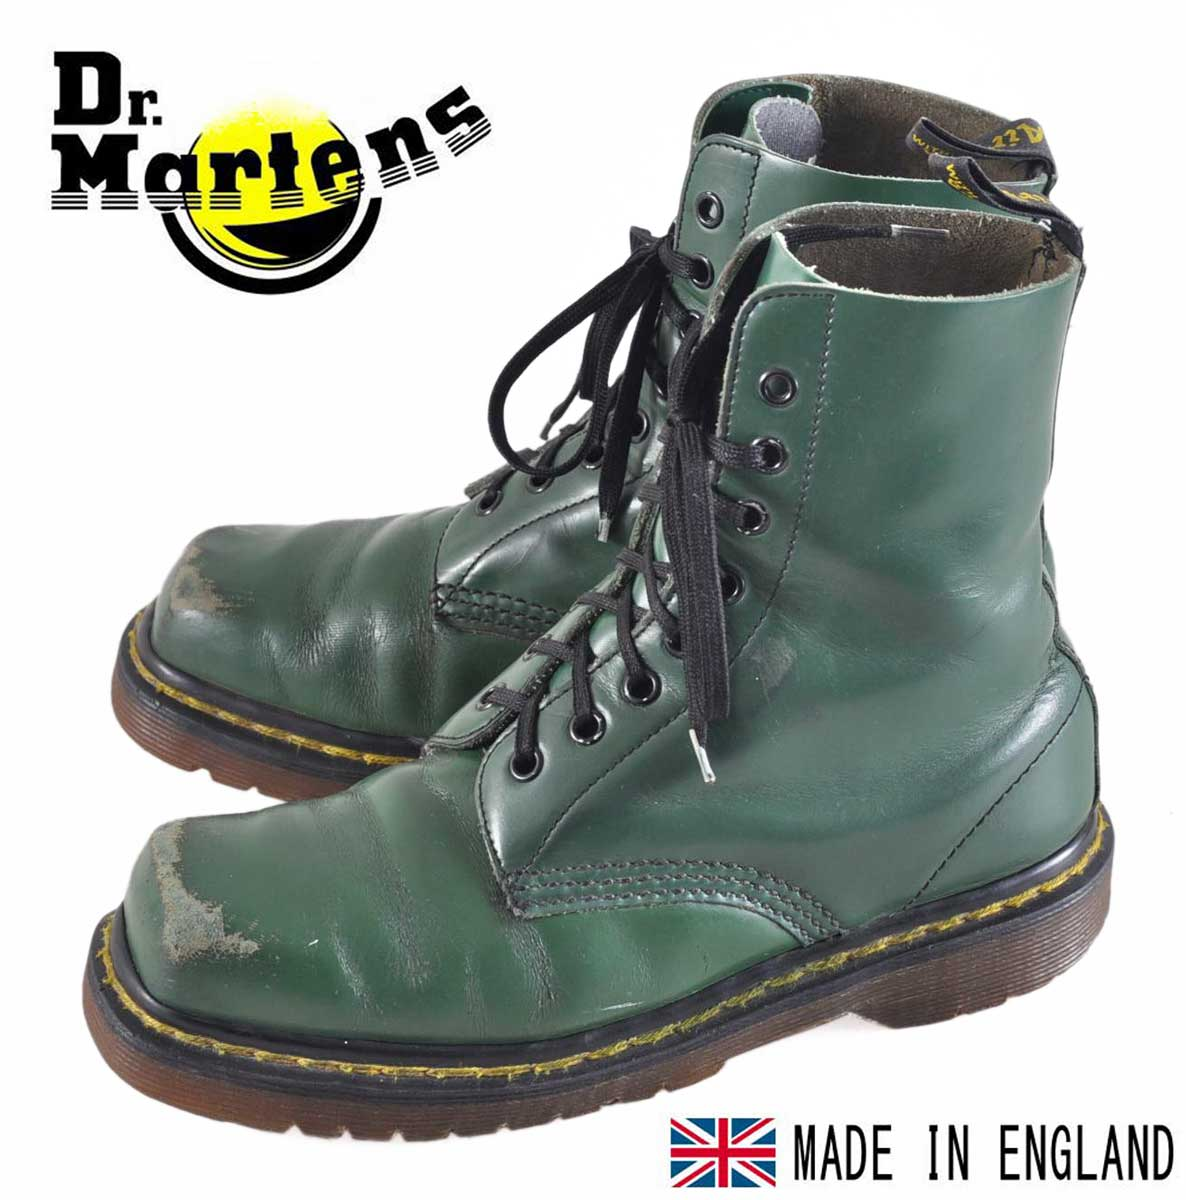 melko mukava myydyin tuote laadukas suunnittelu Vintage / Dr.martens Martens made in England / squat 8 hole boots / green  leather / UK3 JPN22.0cm 1